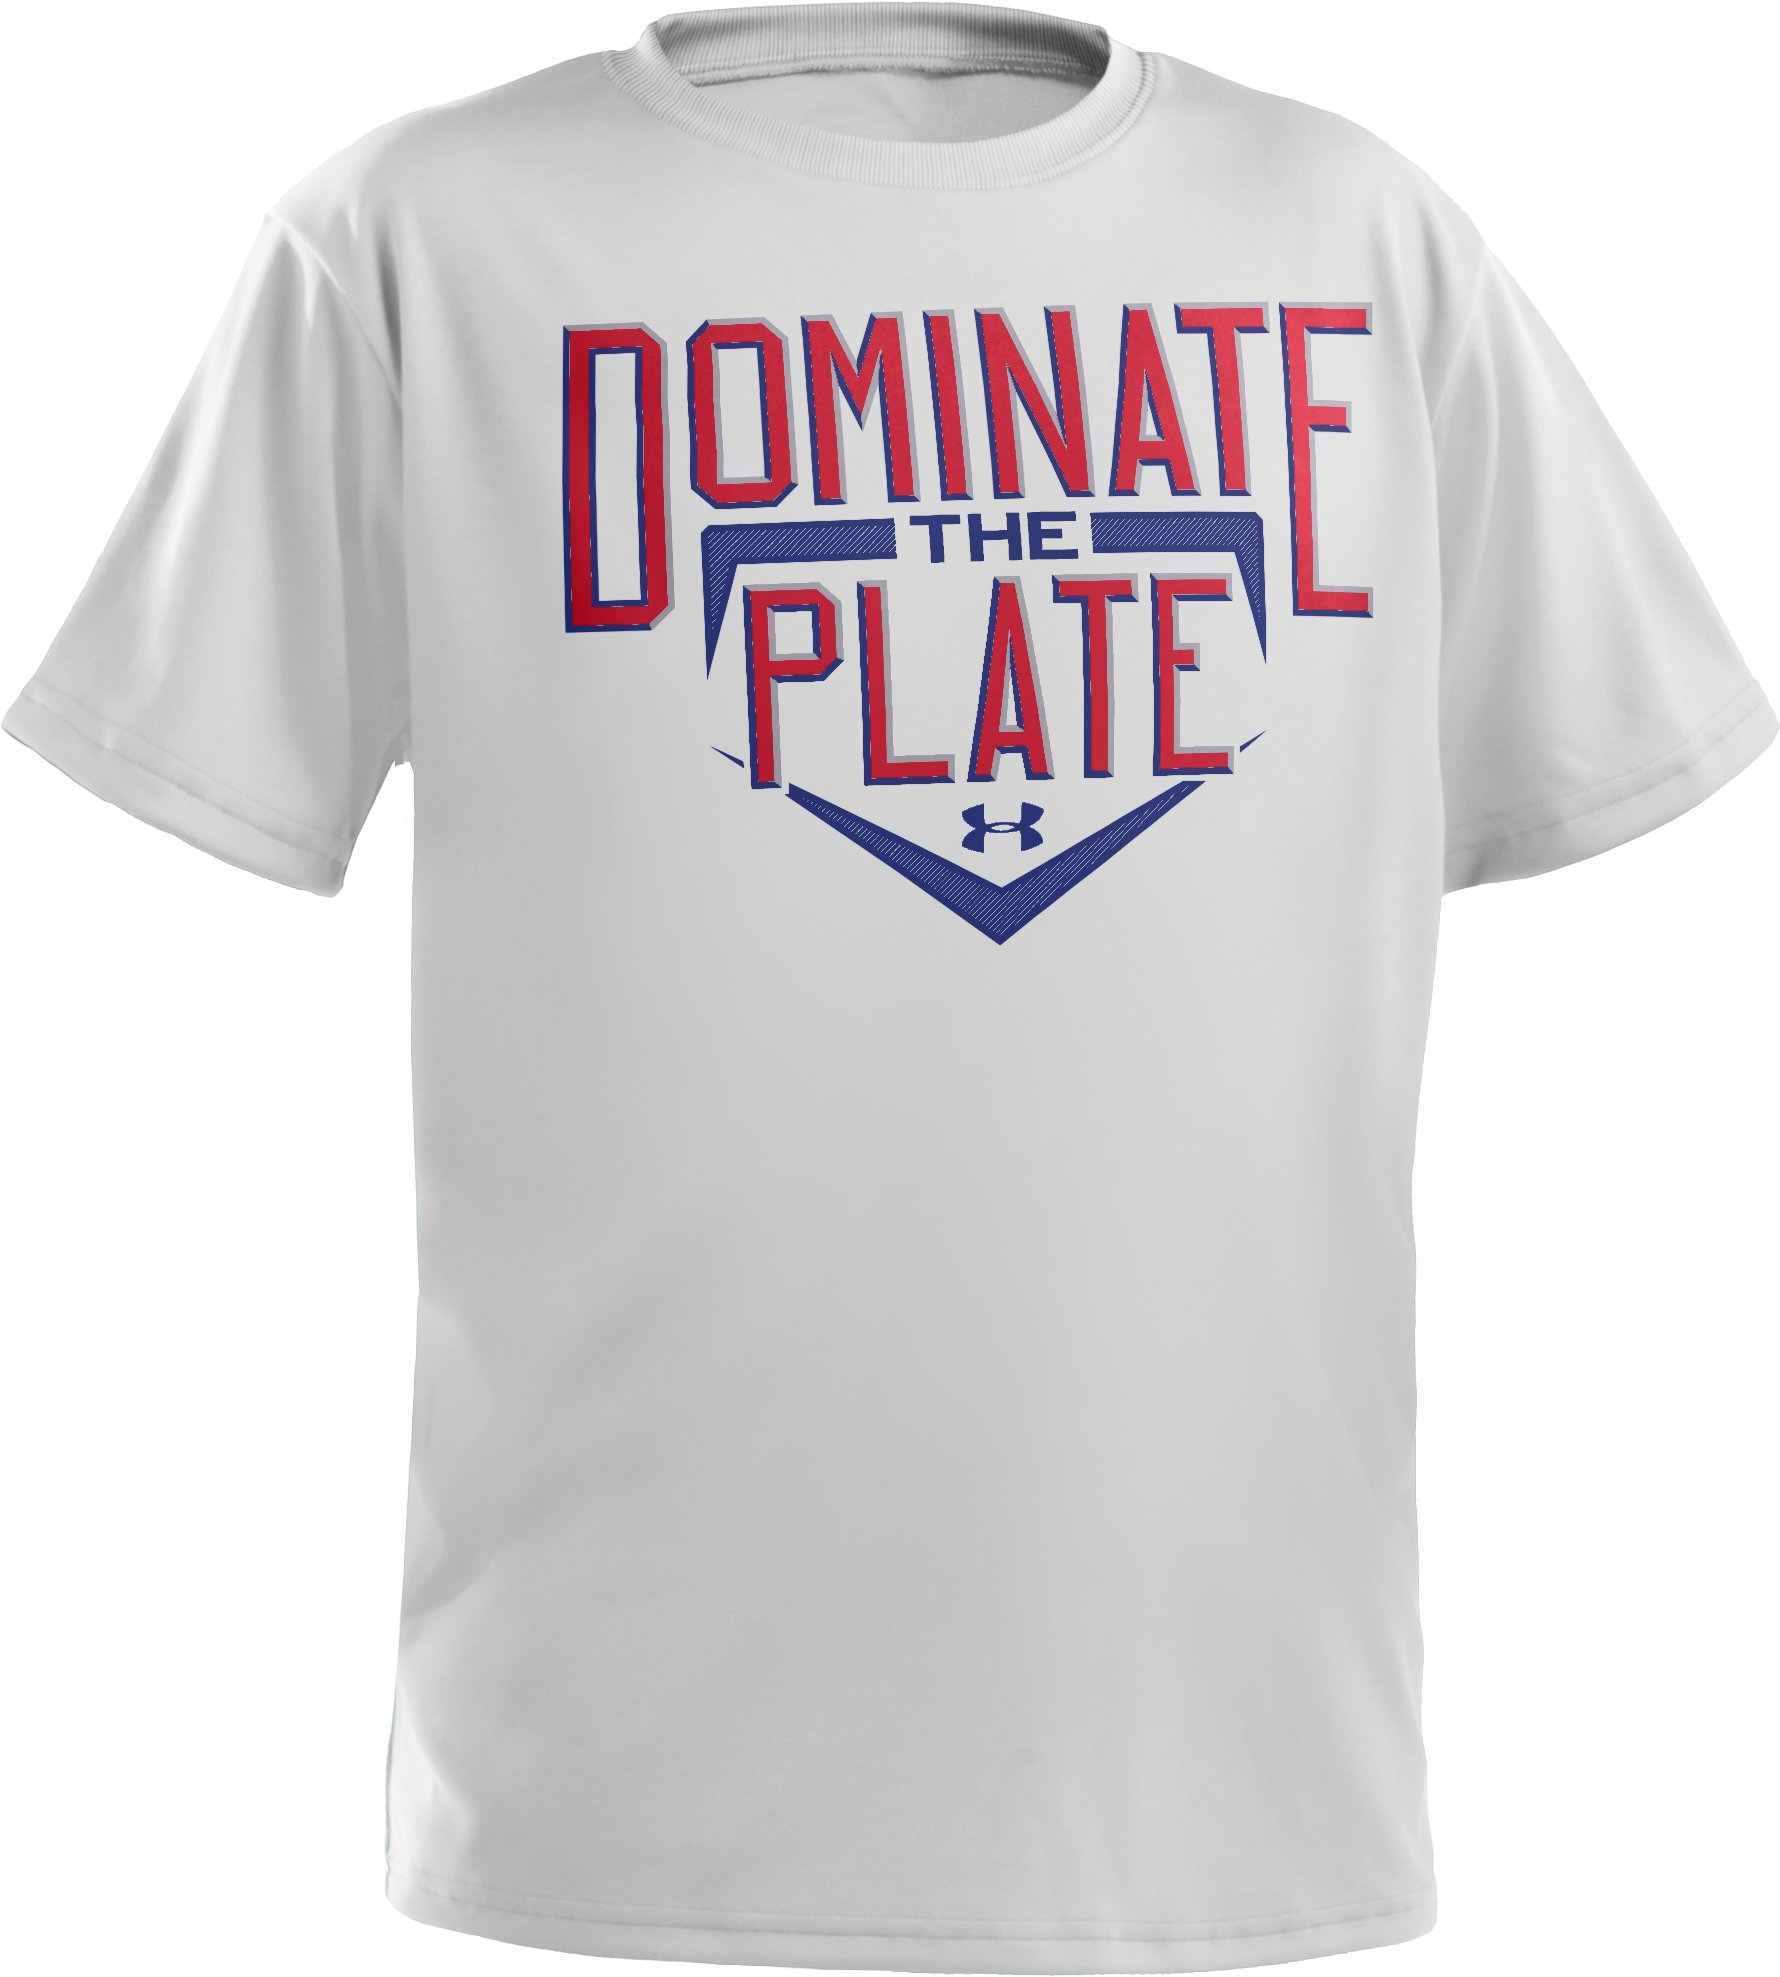 Boys' UA Dominate The Plate T-Shirt, White, zoomed image